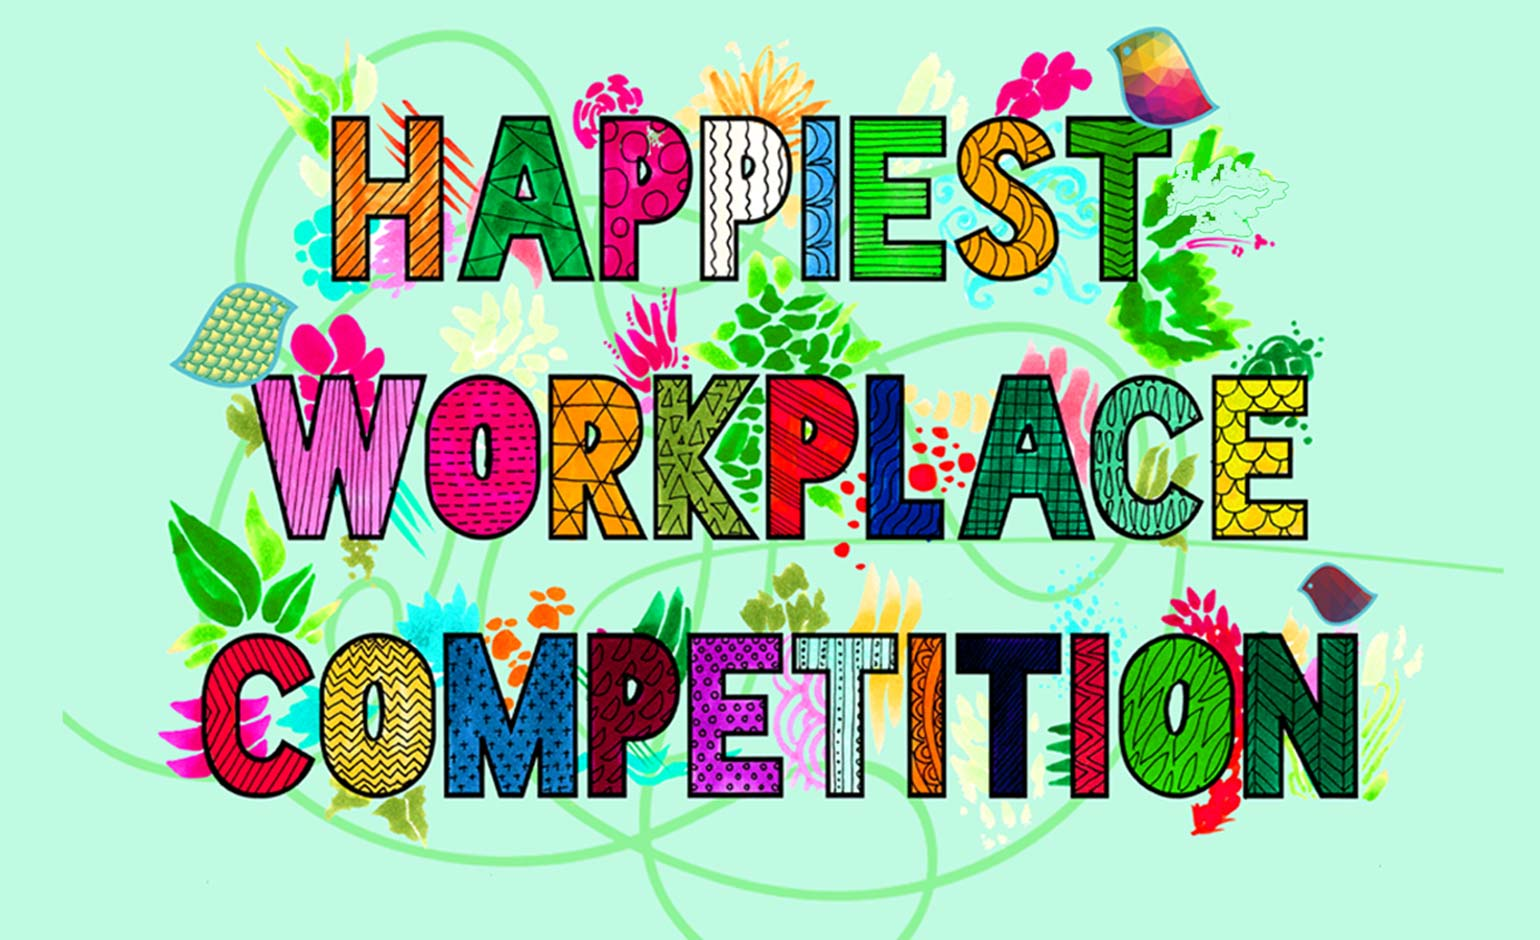 Deadline extended for this year's Happiest Workplace competition